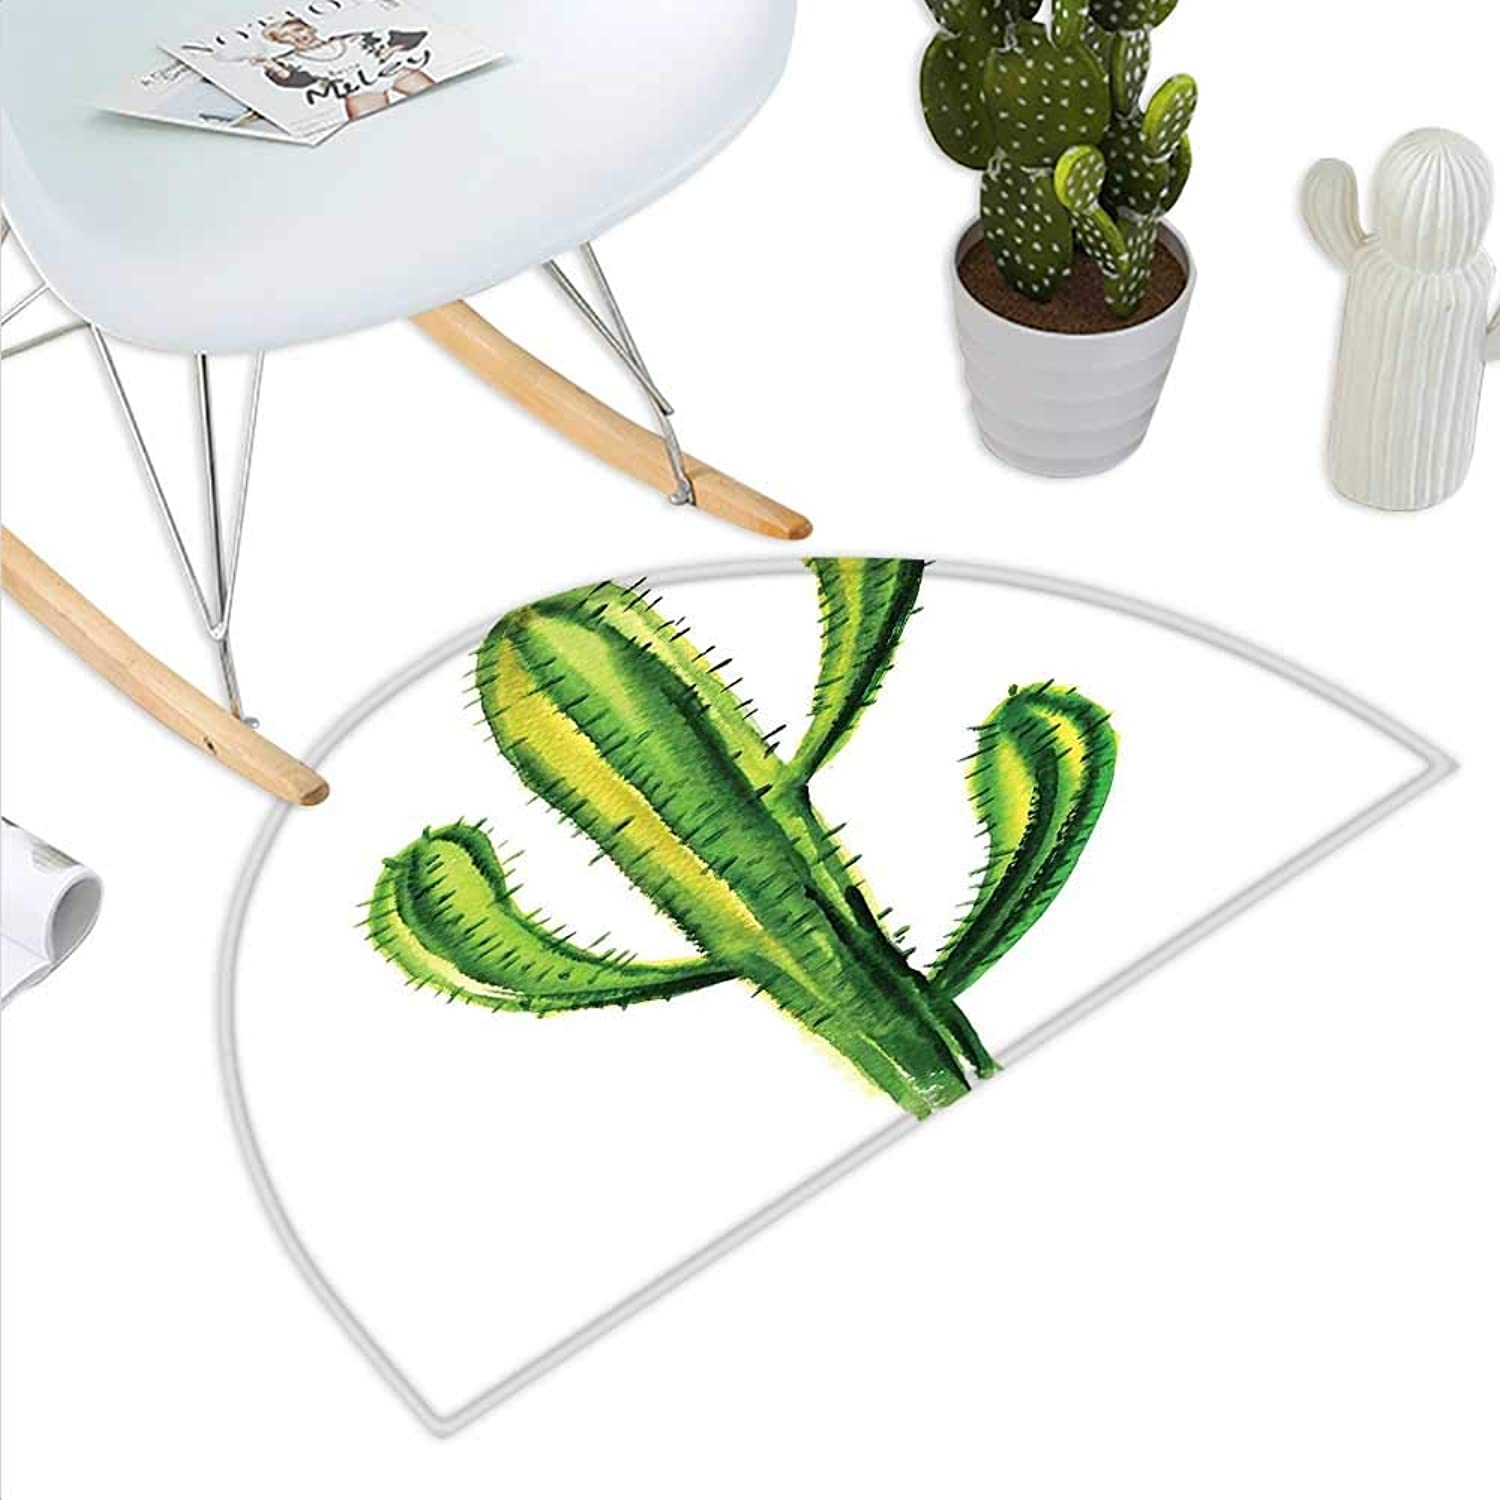 Cactus Semicircle Doormat Mexican Hot Desert Cactus Flower Plant Botanic Design Nature Cartoon Like Print Image Halfmoon doormats H 35.4  xD 53.1  Green